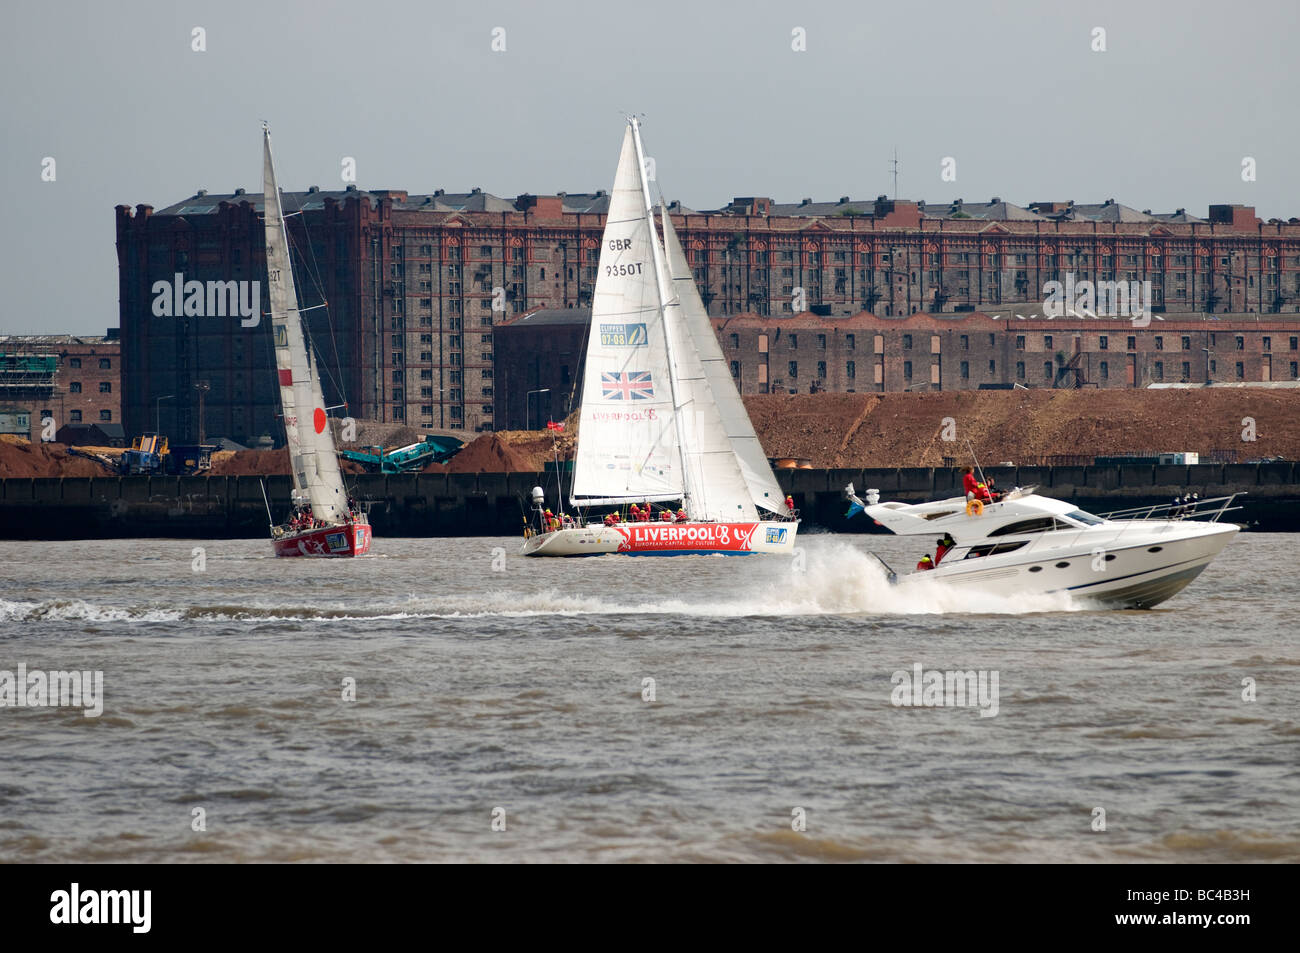 Liverpool 08 Clipper Sailing Yacht Race on River Mersey Liverpool UK - Stock Image